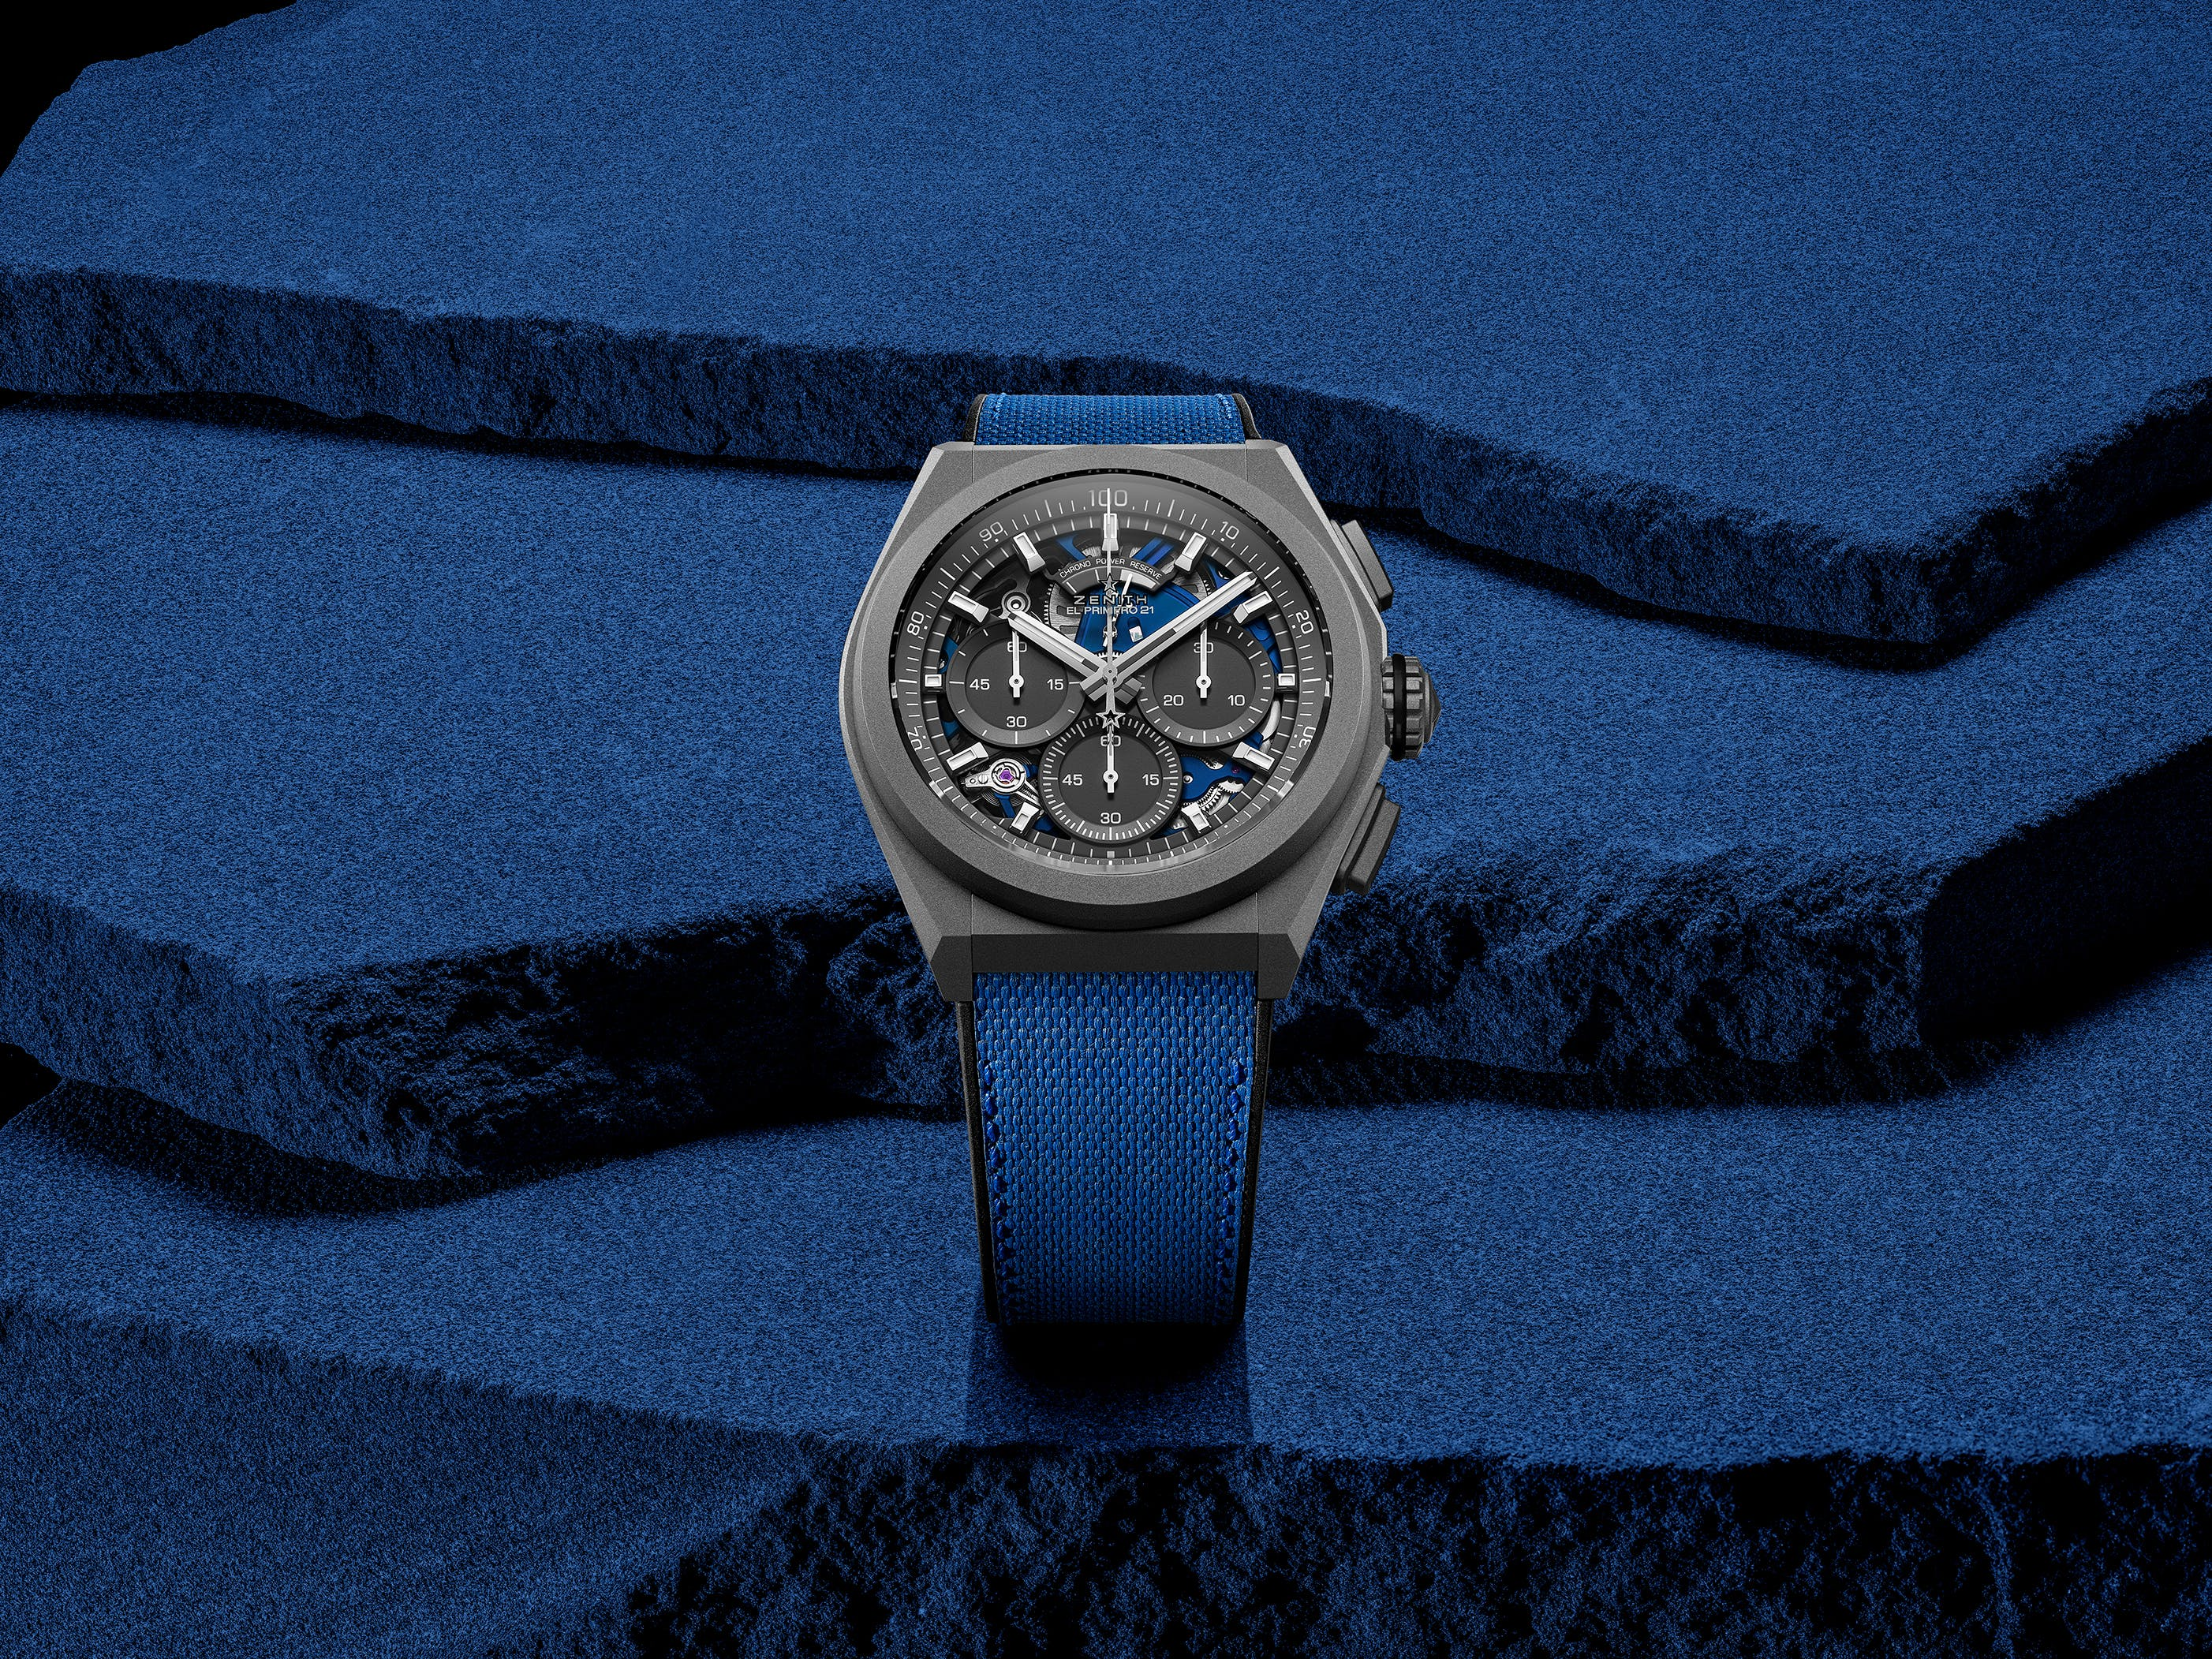 CHROMATICS IN MOTION: ZENITH EXPLORES FREQUENCIES OF LIGHT AND MOVEMENT WITH THE DEFY 21 ULTRABLUE